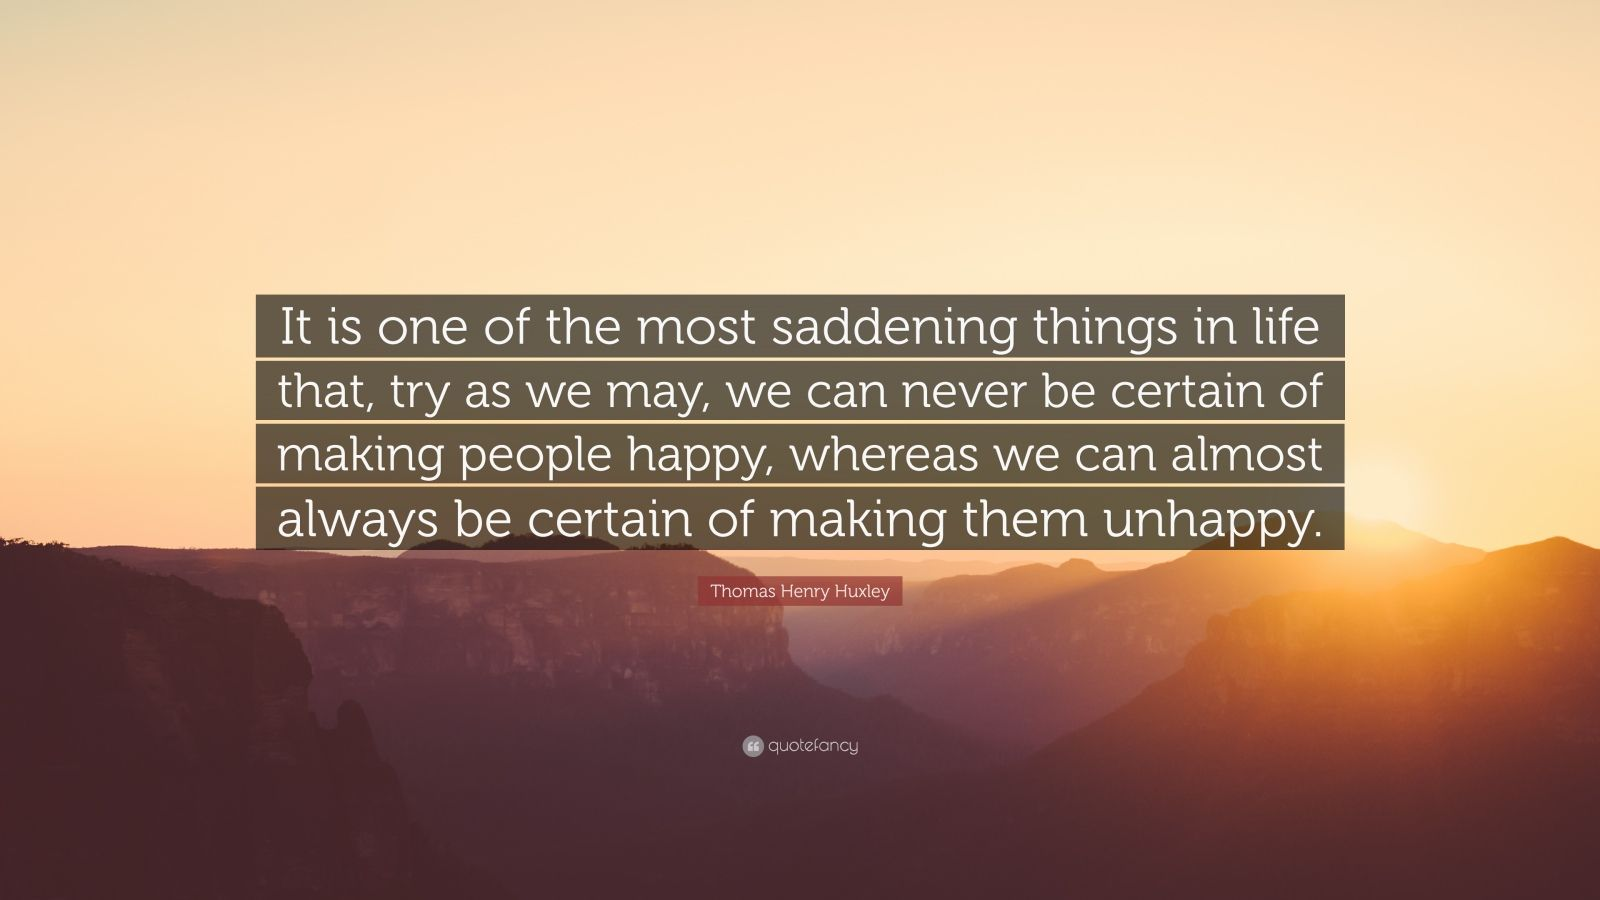 "Thomas Henry Huxley Quote: ""It is one of the most saddening things in life that, try as we may, we can never be certain of making people happy, whereas we can almost always be certain of making them unhappy."""